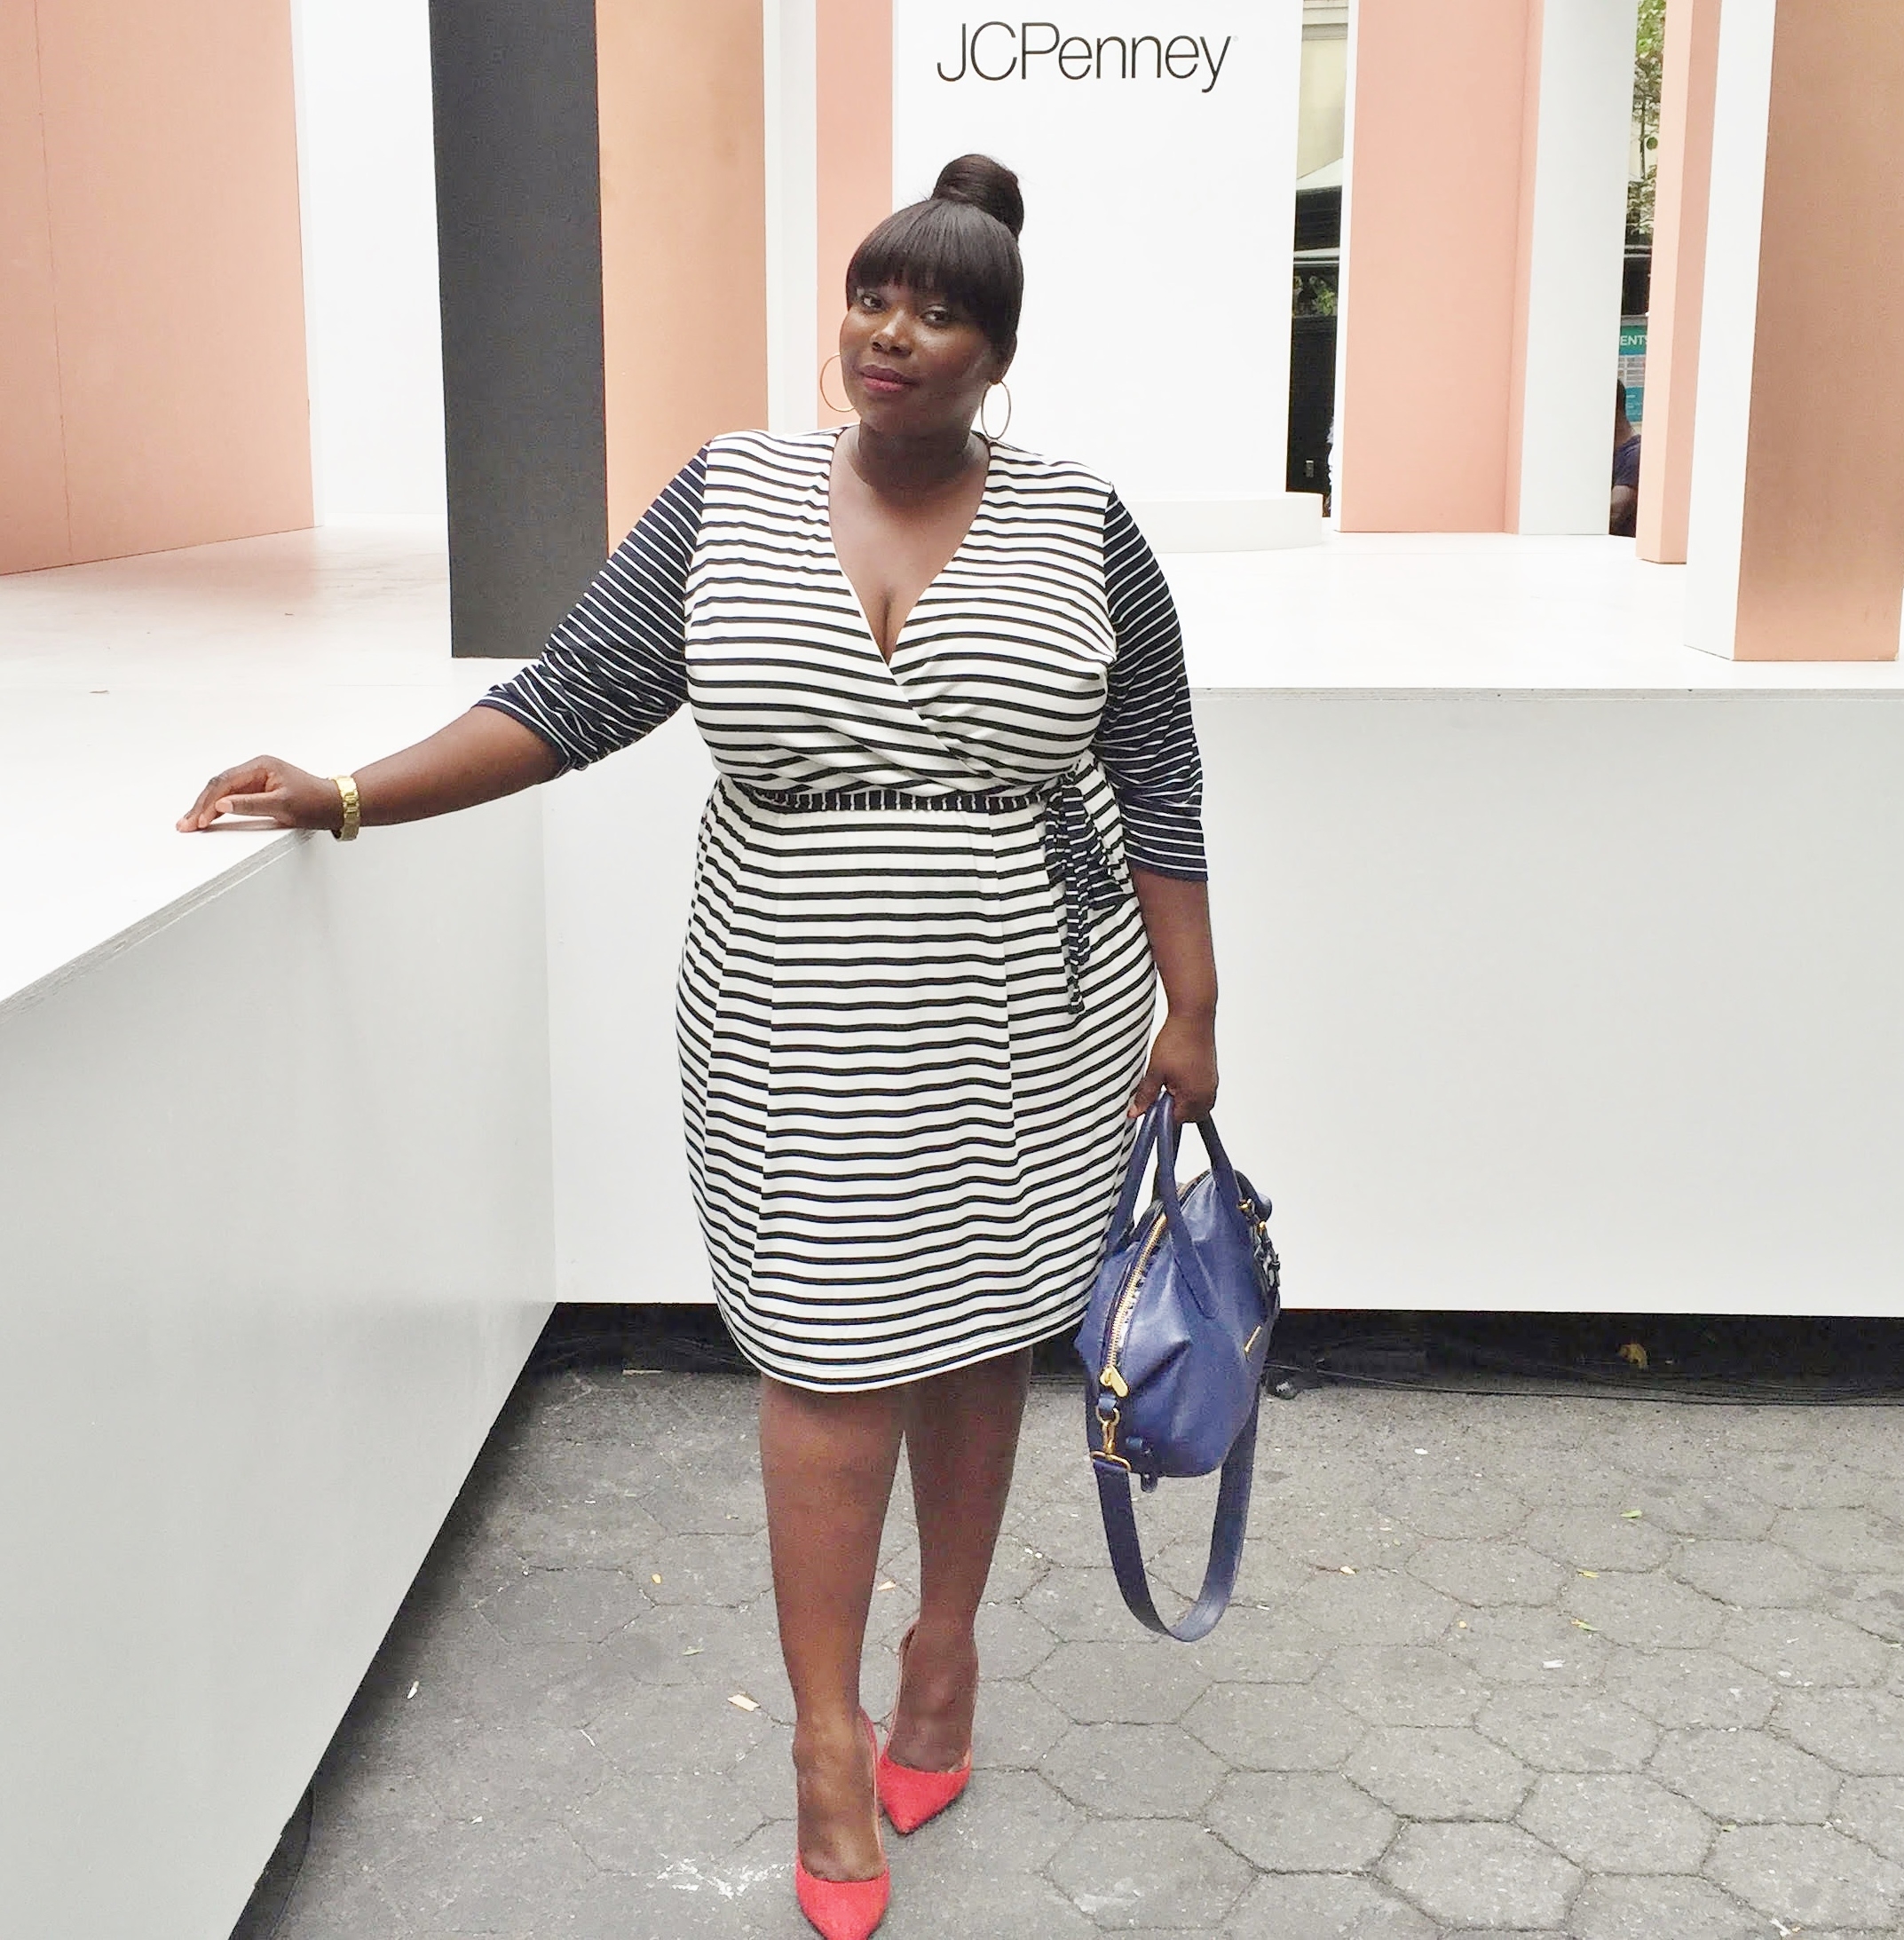 Shop Ashley Nell Tipton Boutique+ JCPenney Collection